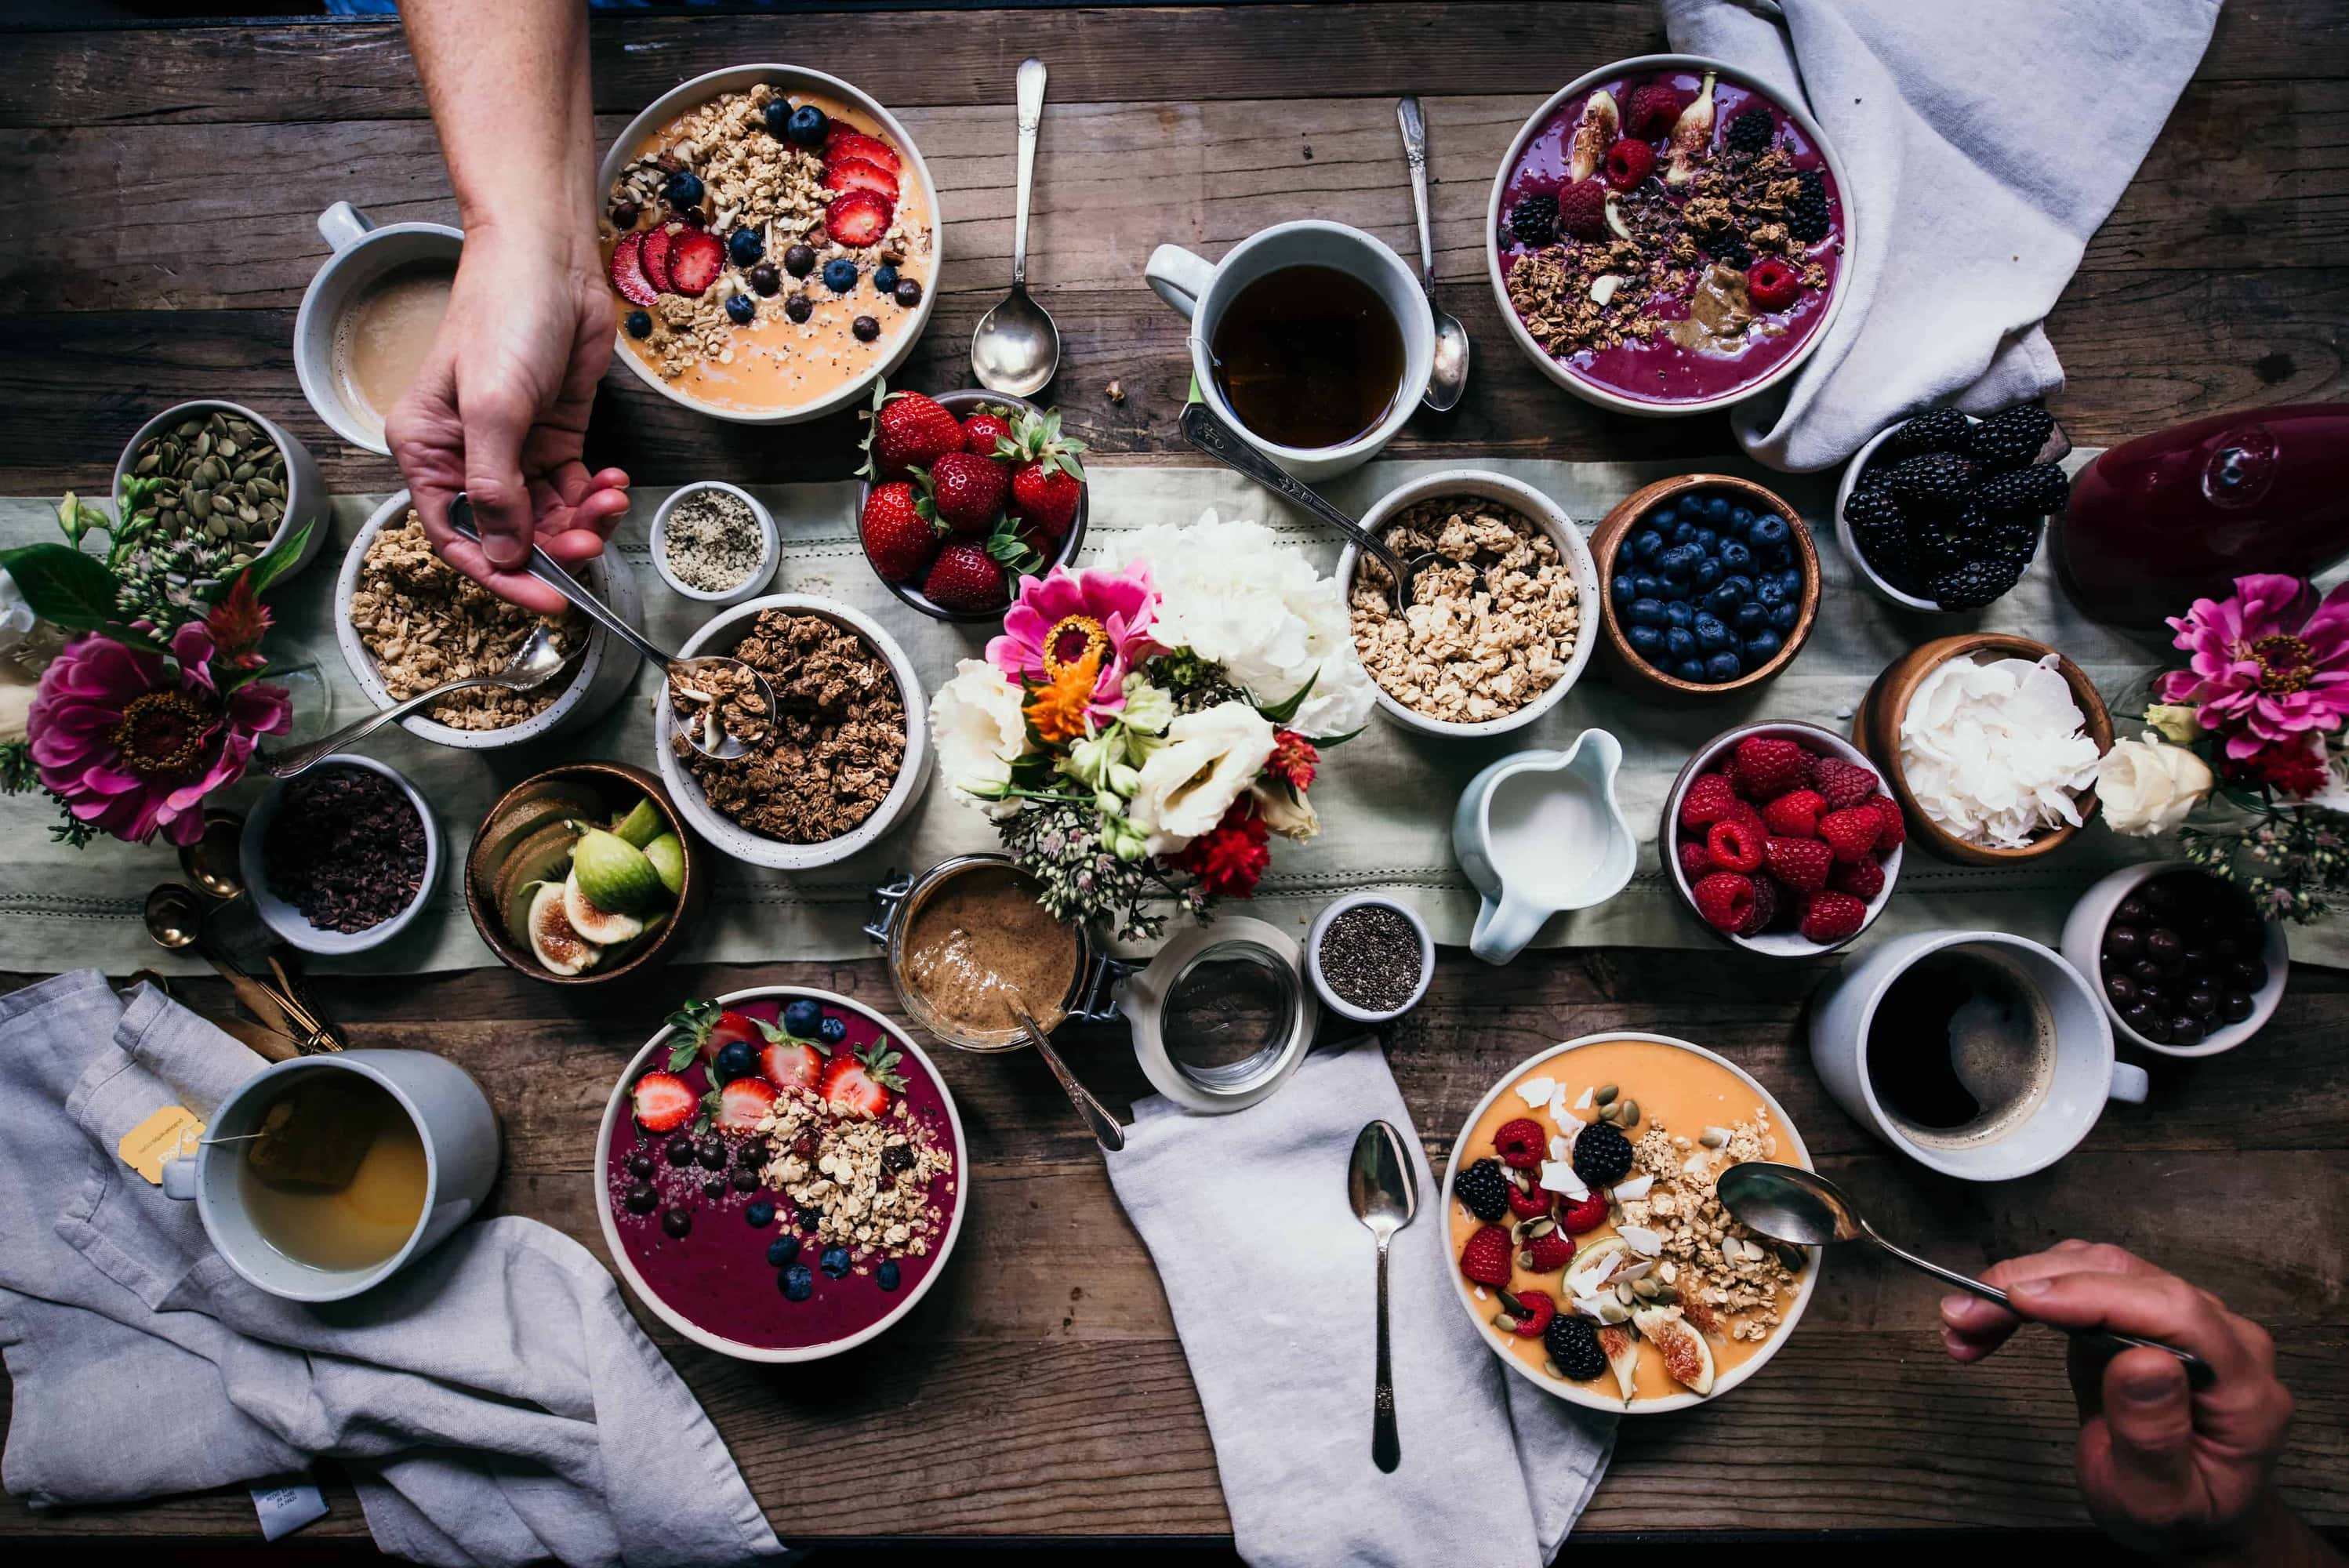 Overhead of breakfast tablescape with smoothie bowls, bowls of fresh fruit, granola, flowers, tea, coffee